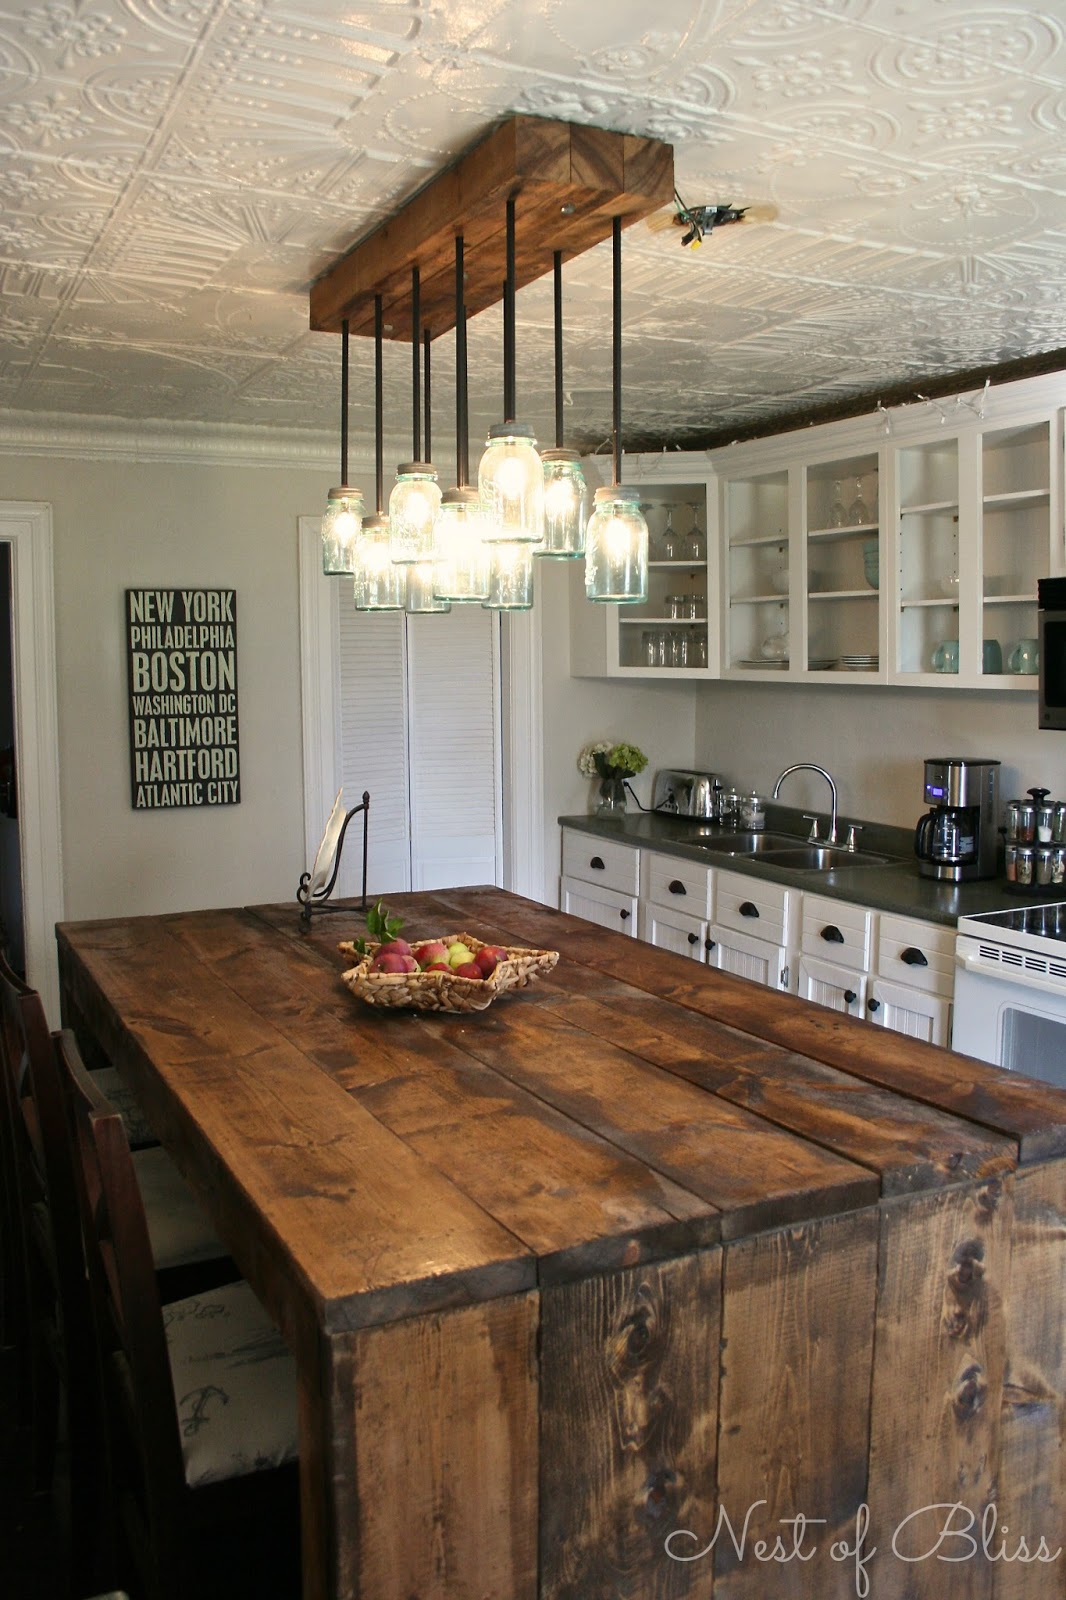 marvelous Country Farmhouse Kitchen Designs Part - 20: 11. Tin Ceiling + Heavy Wood u003d Unique Atmosphere